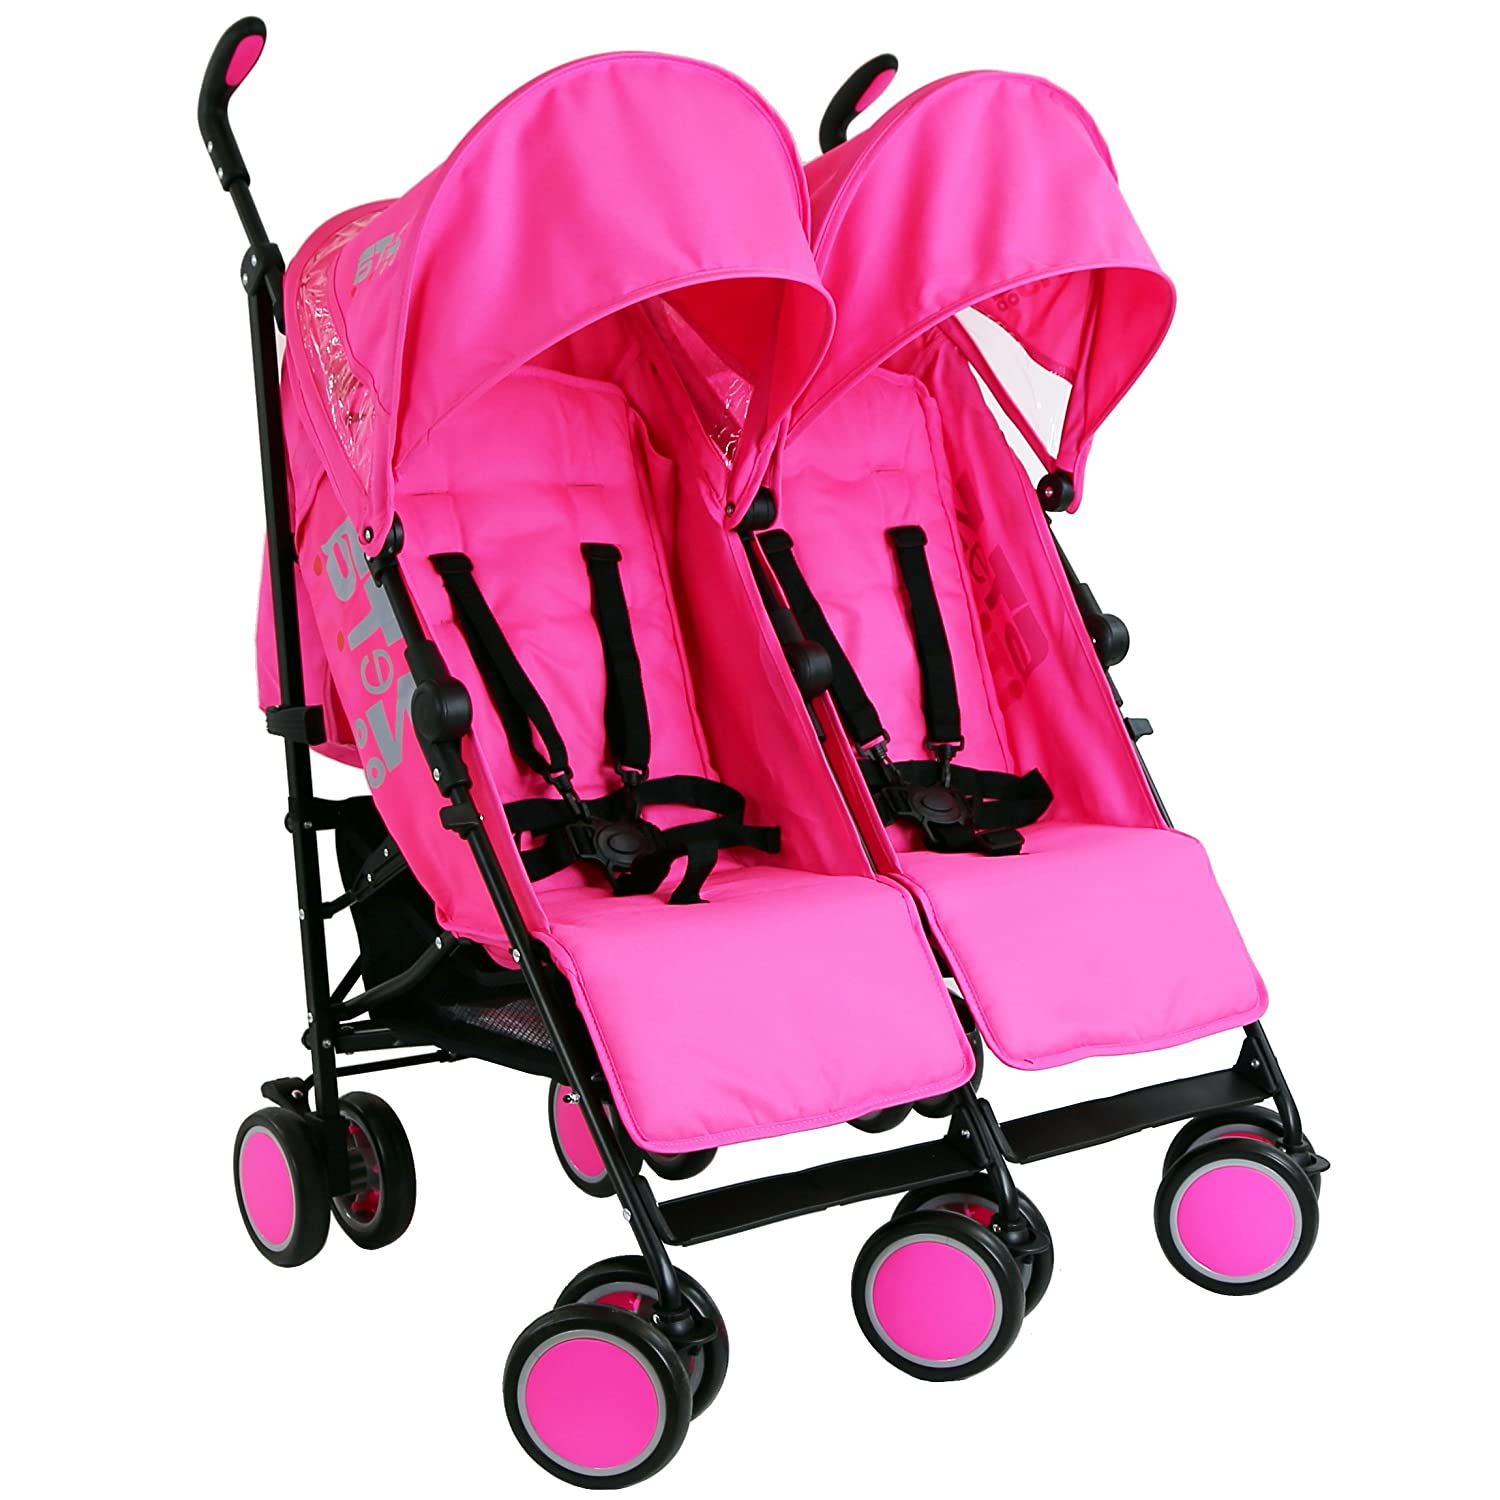 Zeta Citi TWIN Stroller Buggy Pushchair - Raspberry Pink Double Stroller Baby TravelTM